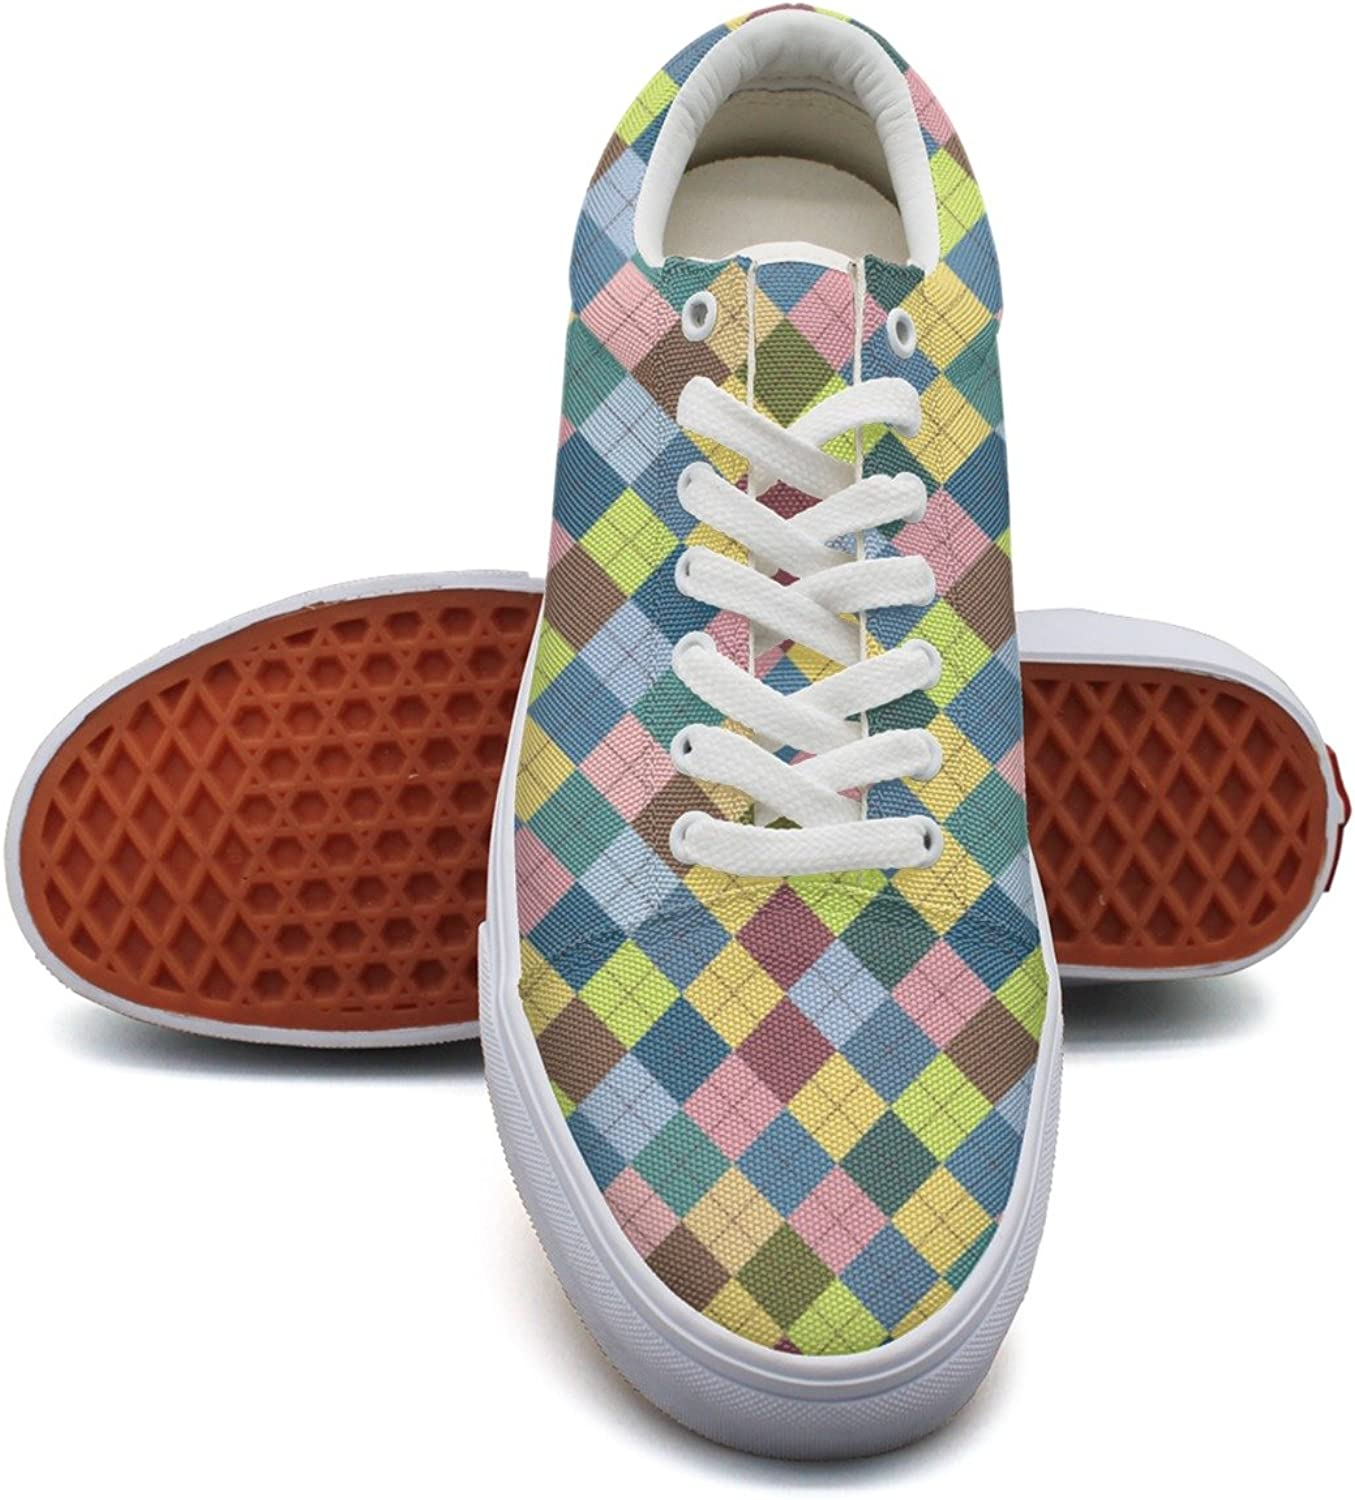 Charmarm colorful Checkerboard Women Utility Low Top Canvas Slip-on shoes